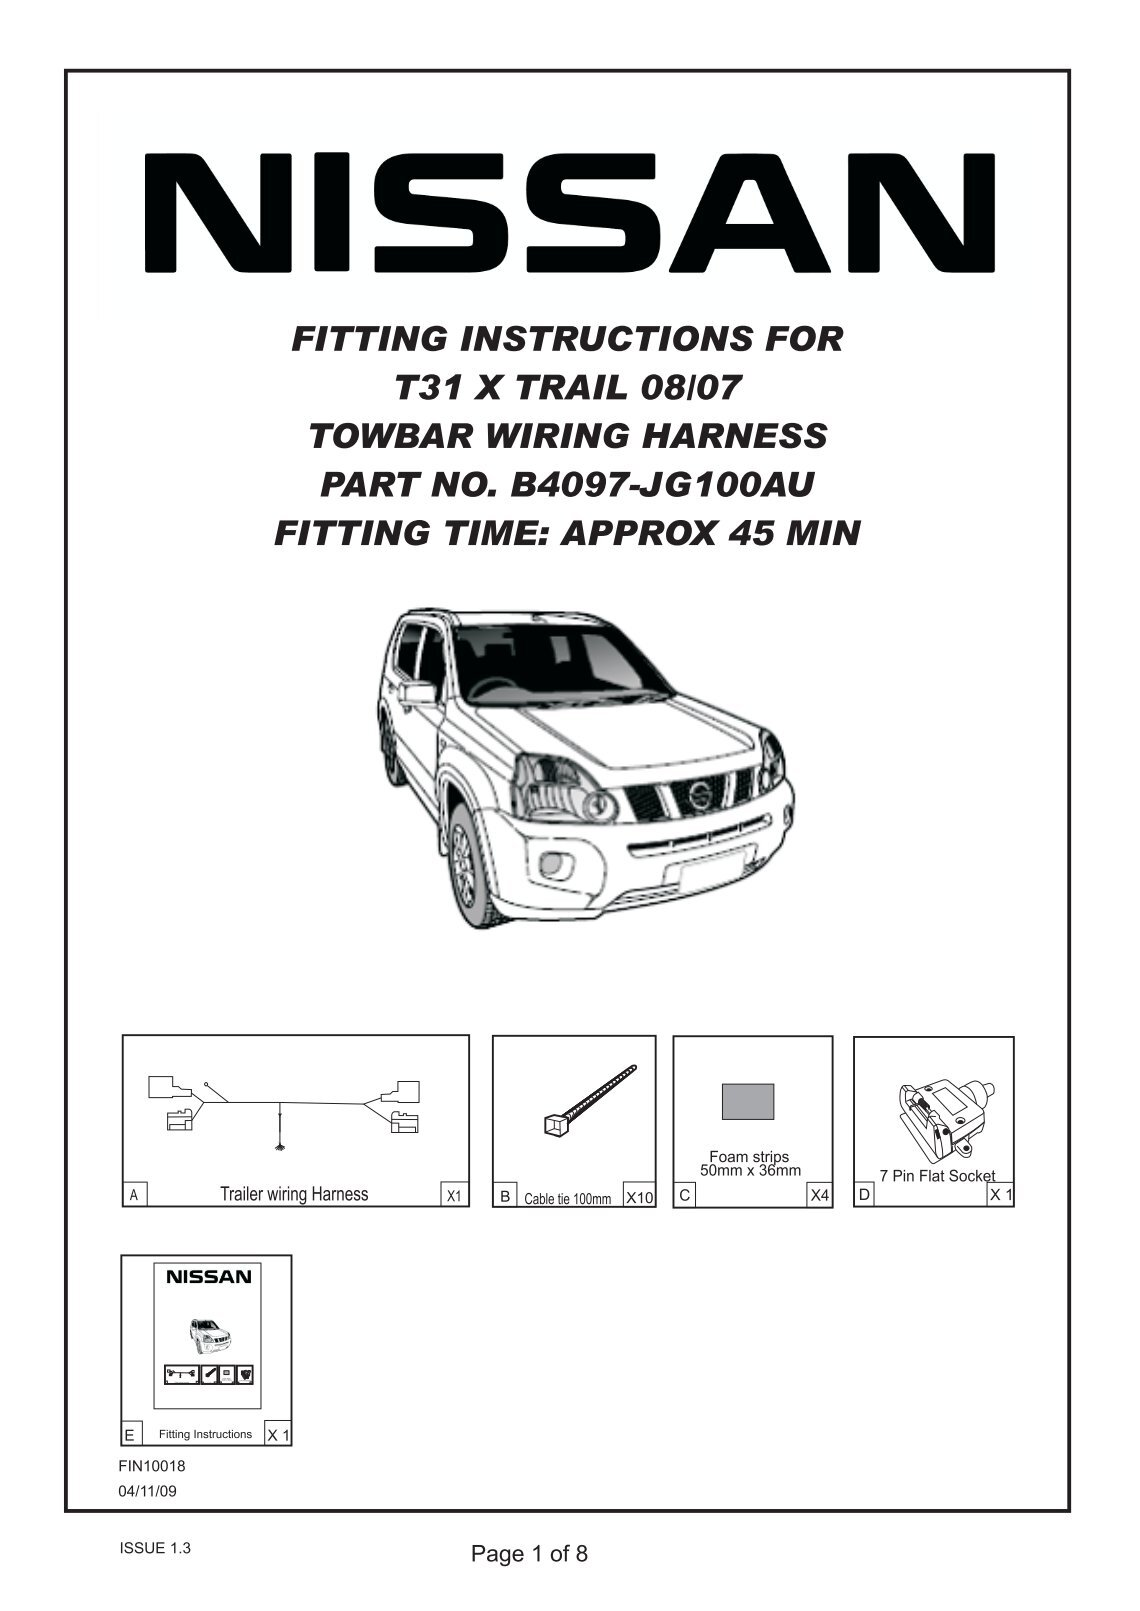 hight resolution of 2014 nissan altima s ke diagram nissan auto parts 2007 nissan altima wiring diagram 2001 nissan